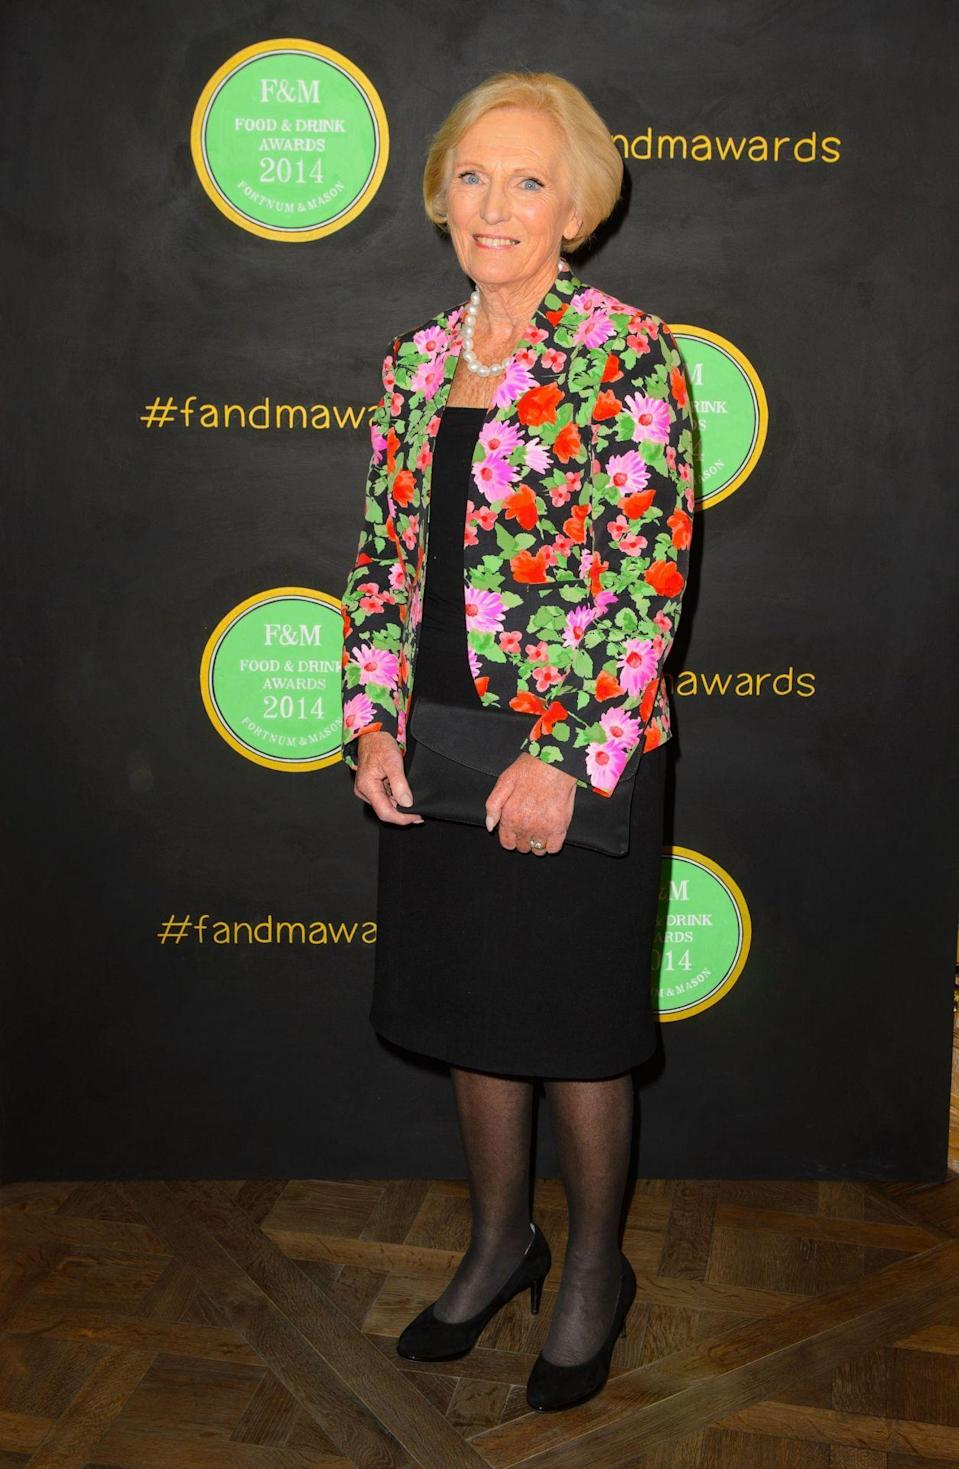 <p>The presenter donned yet another bright floral design for an awards show.</p><p><i>[Photo: PA] </i></p>